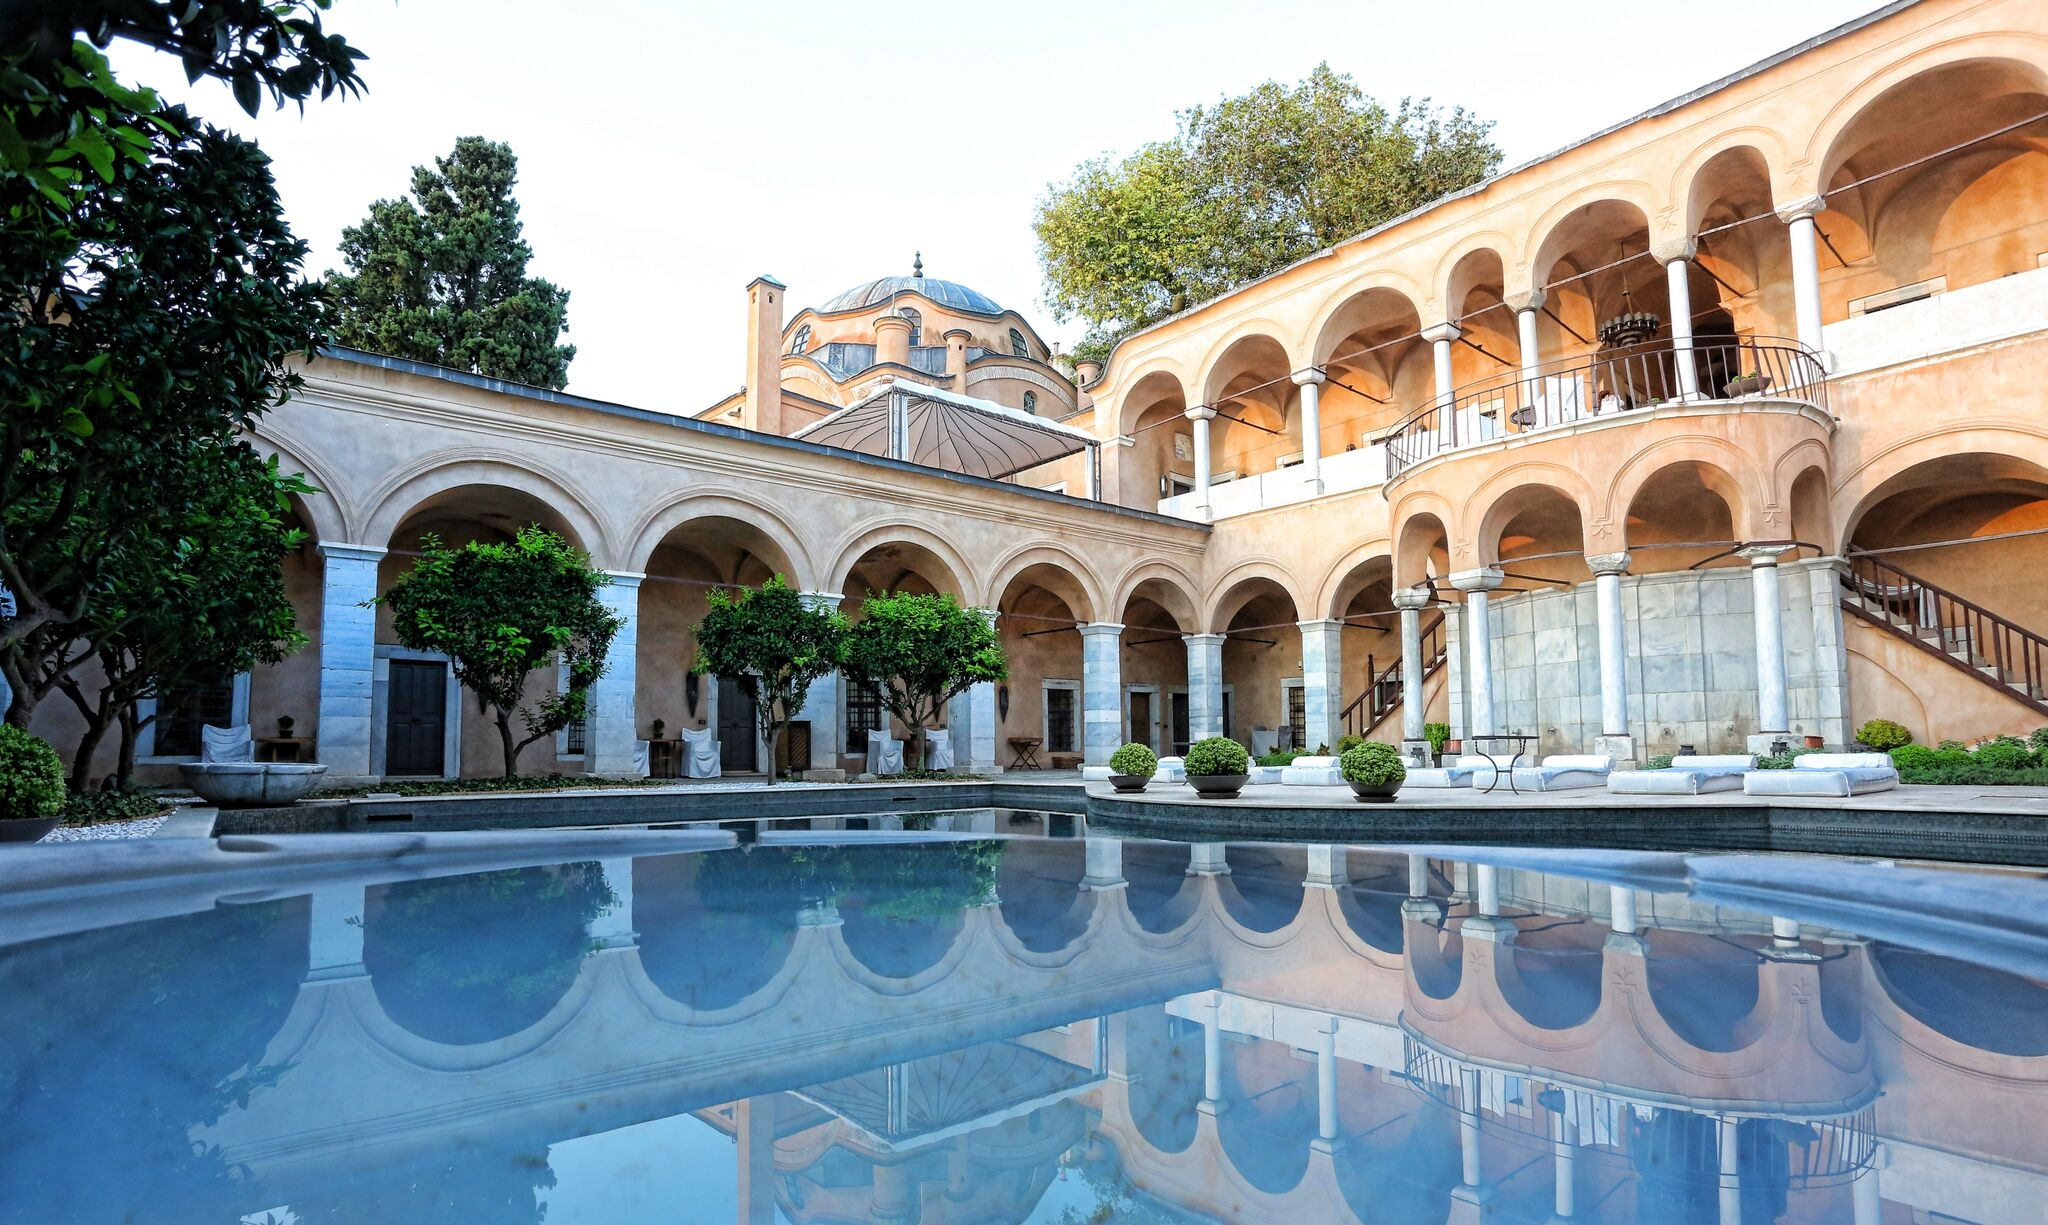 5* Imaret Hotel - Καβάλα ? -33% ? 3 Ημέρες (2 Διανυκτερεύσεις) ? 2 Άτομα ? Πρωινό ? Έως 27/04/2018 ? Early check in και Late check out κατόπιν διαθεσιμότητας!